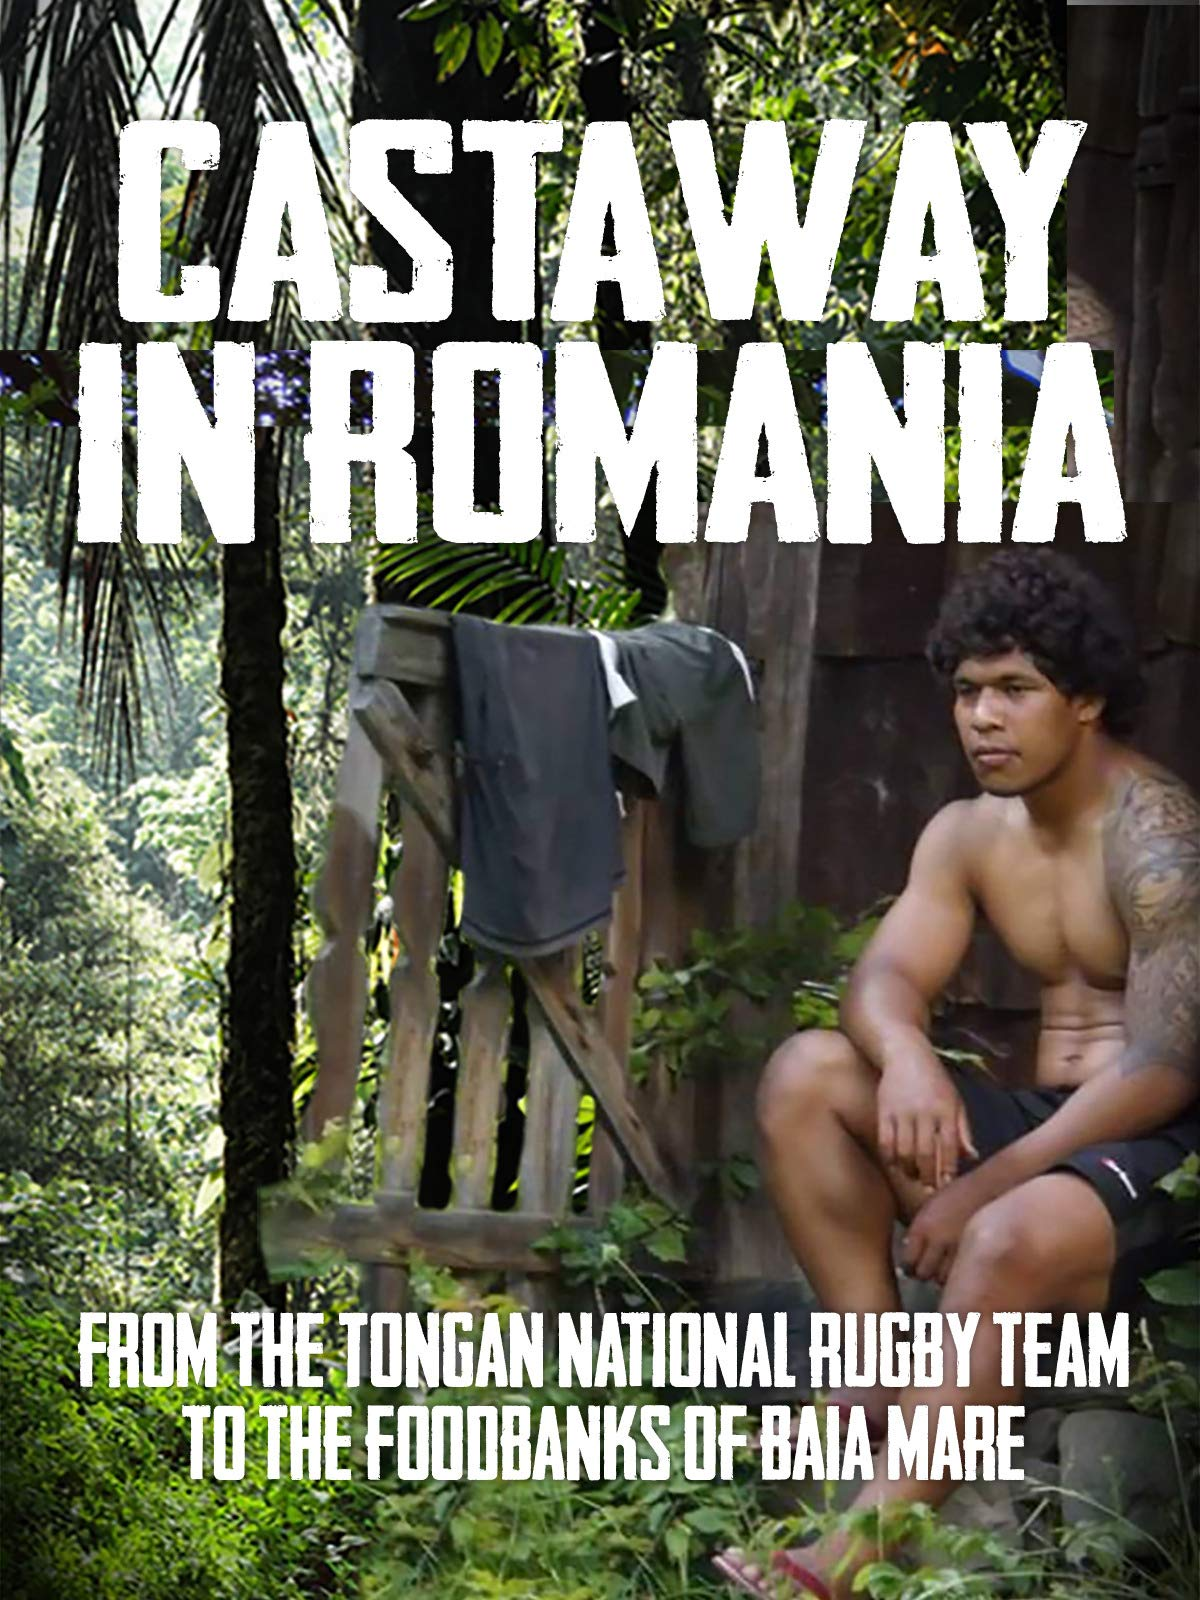 Castaway in Romania: From the Tongan national rugby team to the foodbanks of Baia Mare